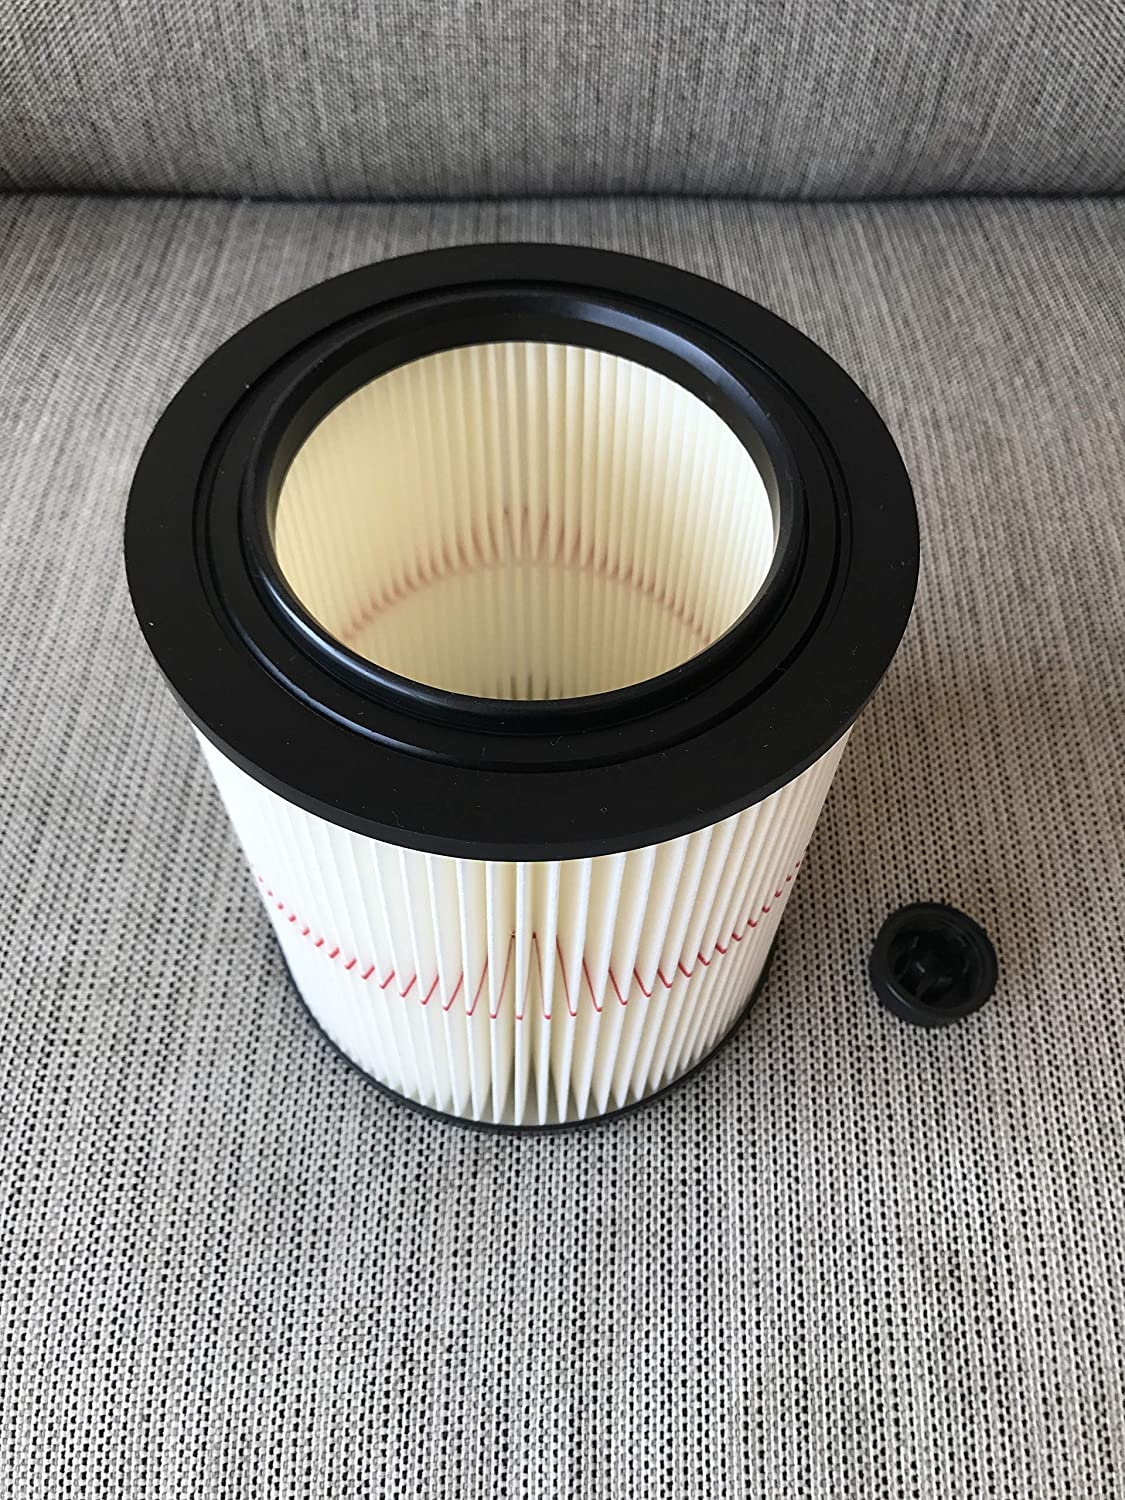 Max 74% OFF KLEAN AIR 17816 Filter Compatible Cartridg Craftsman Ranking TOP9 Vacuum with